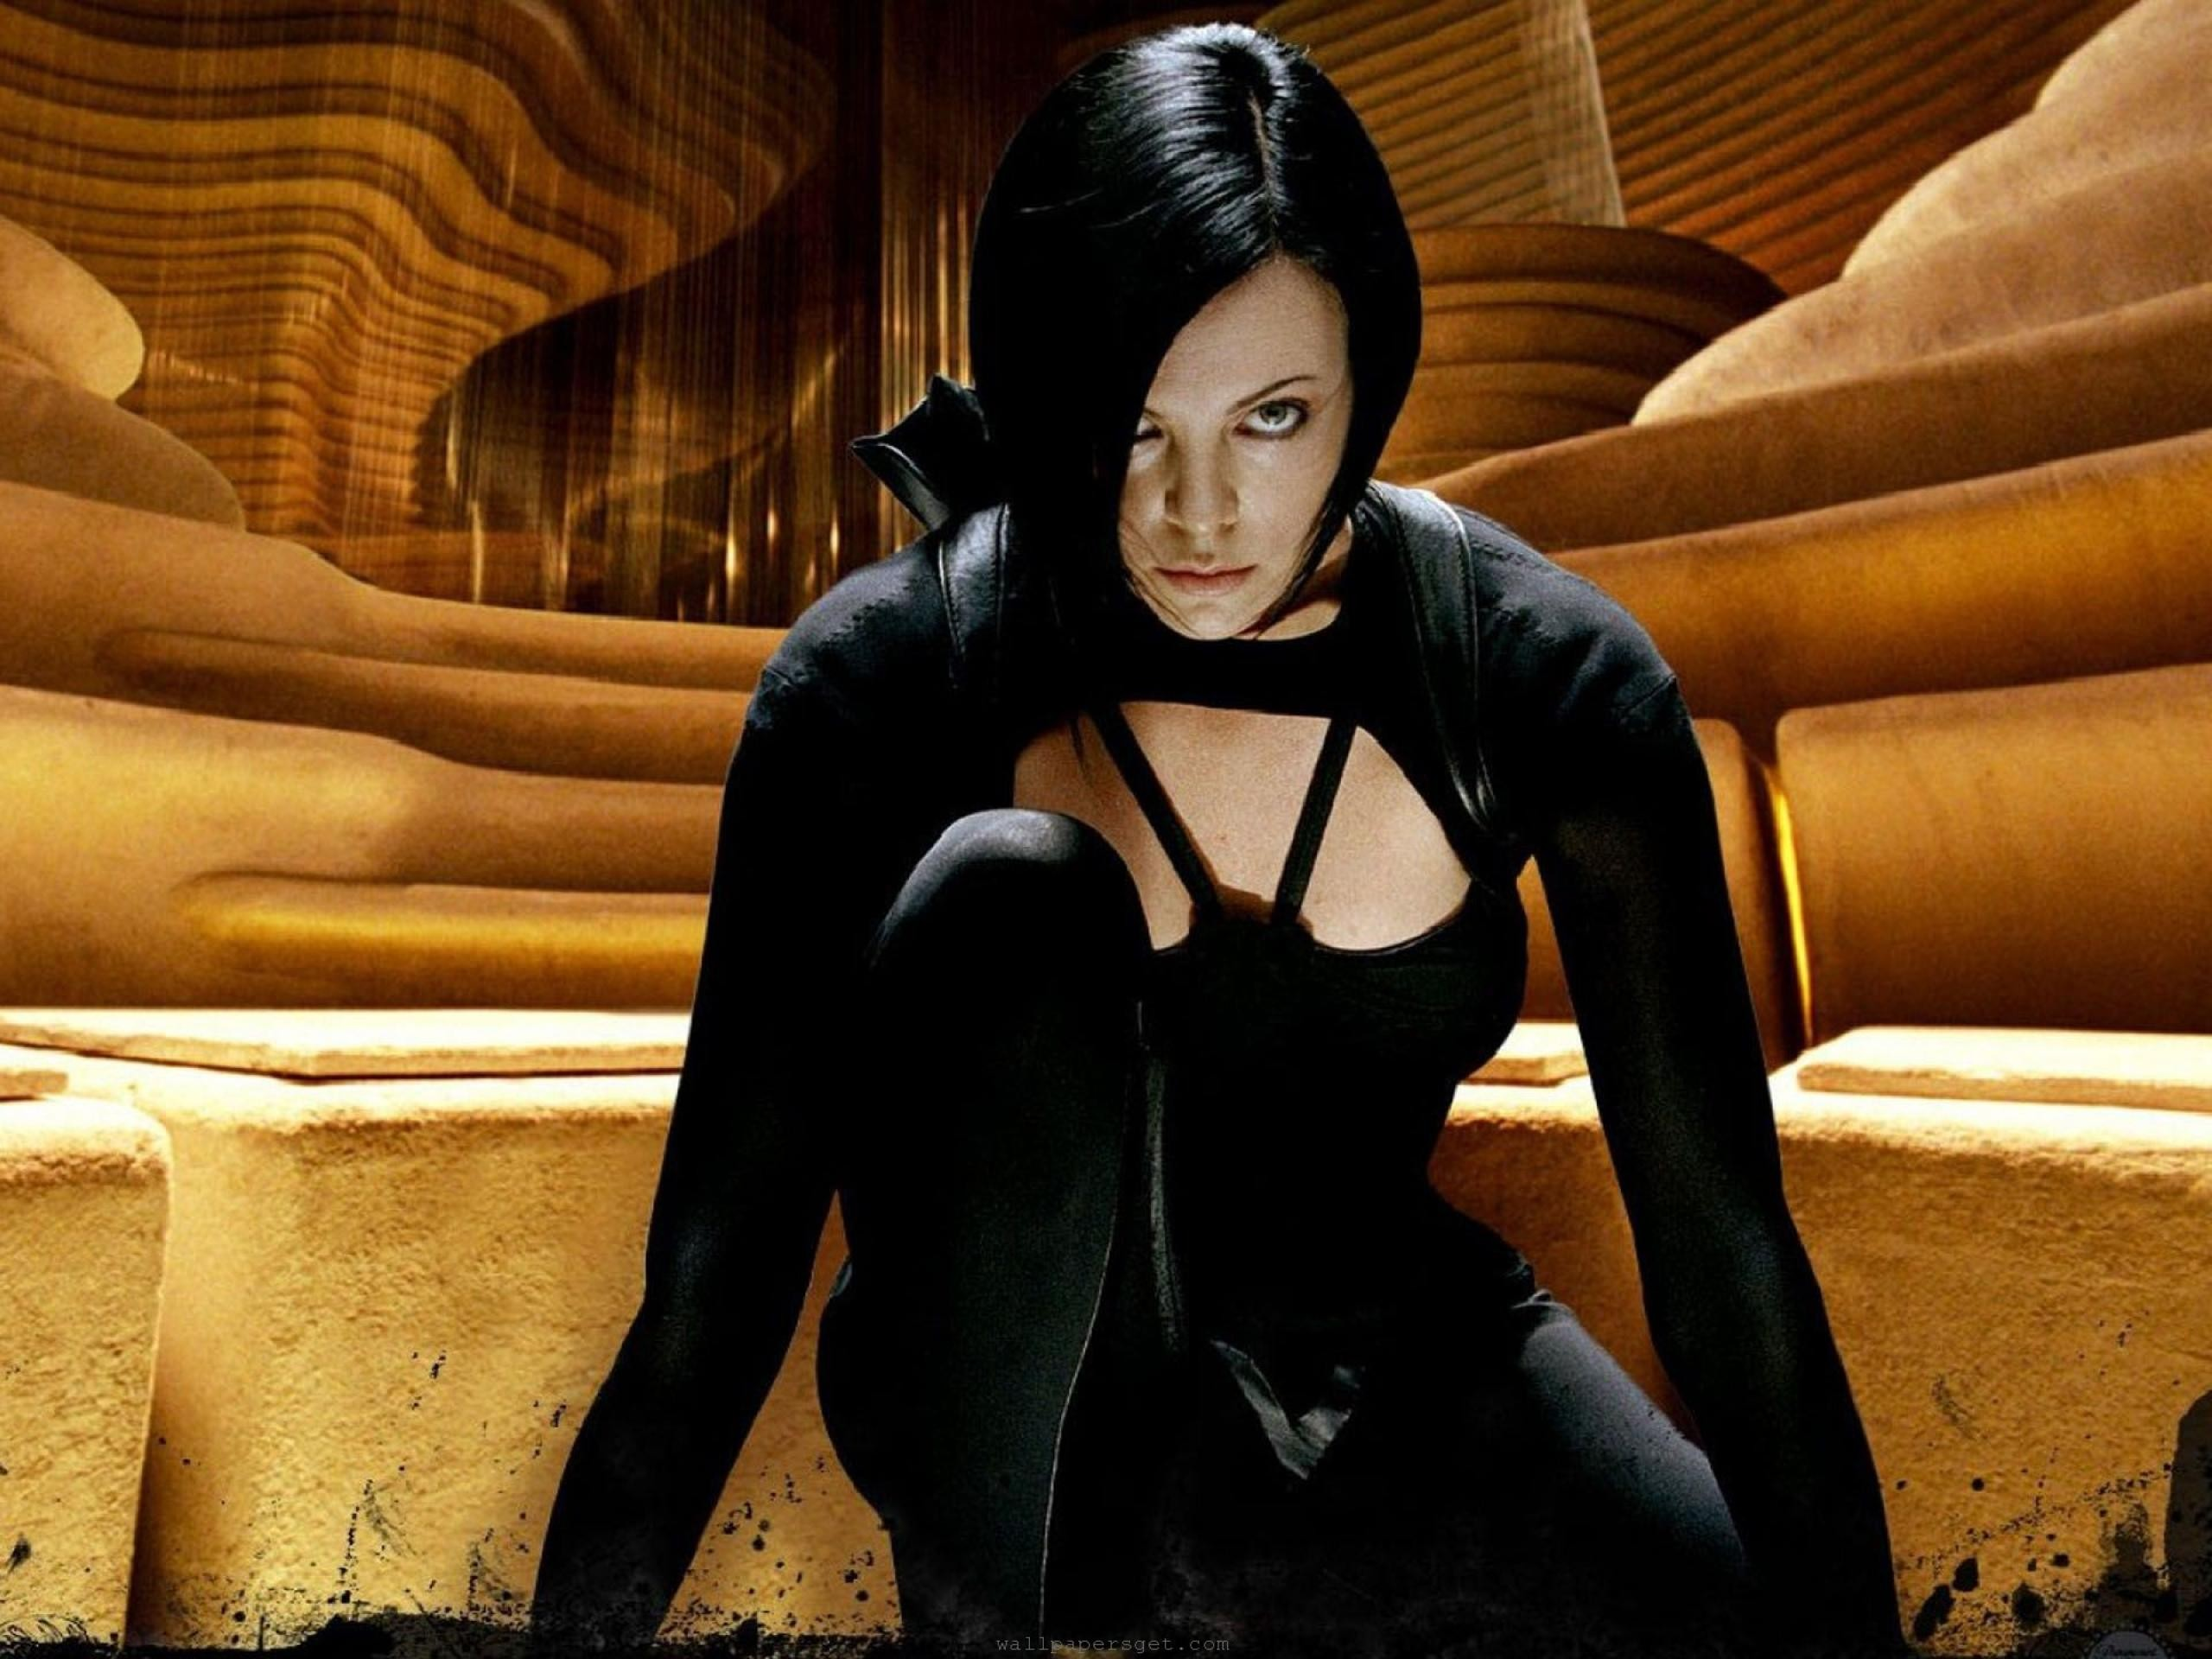 2560x1920 > Aeon Flux Wallpapers